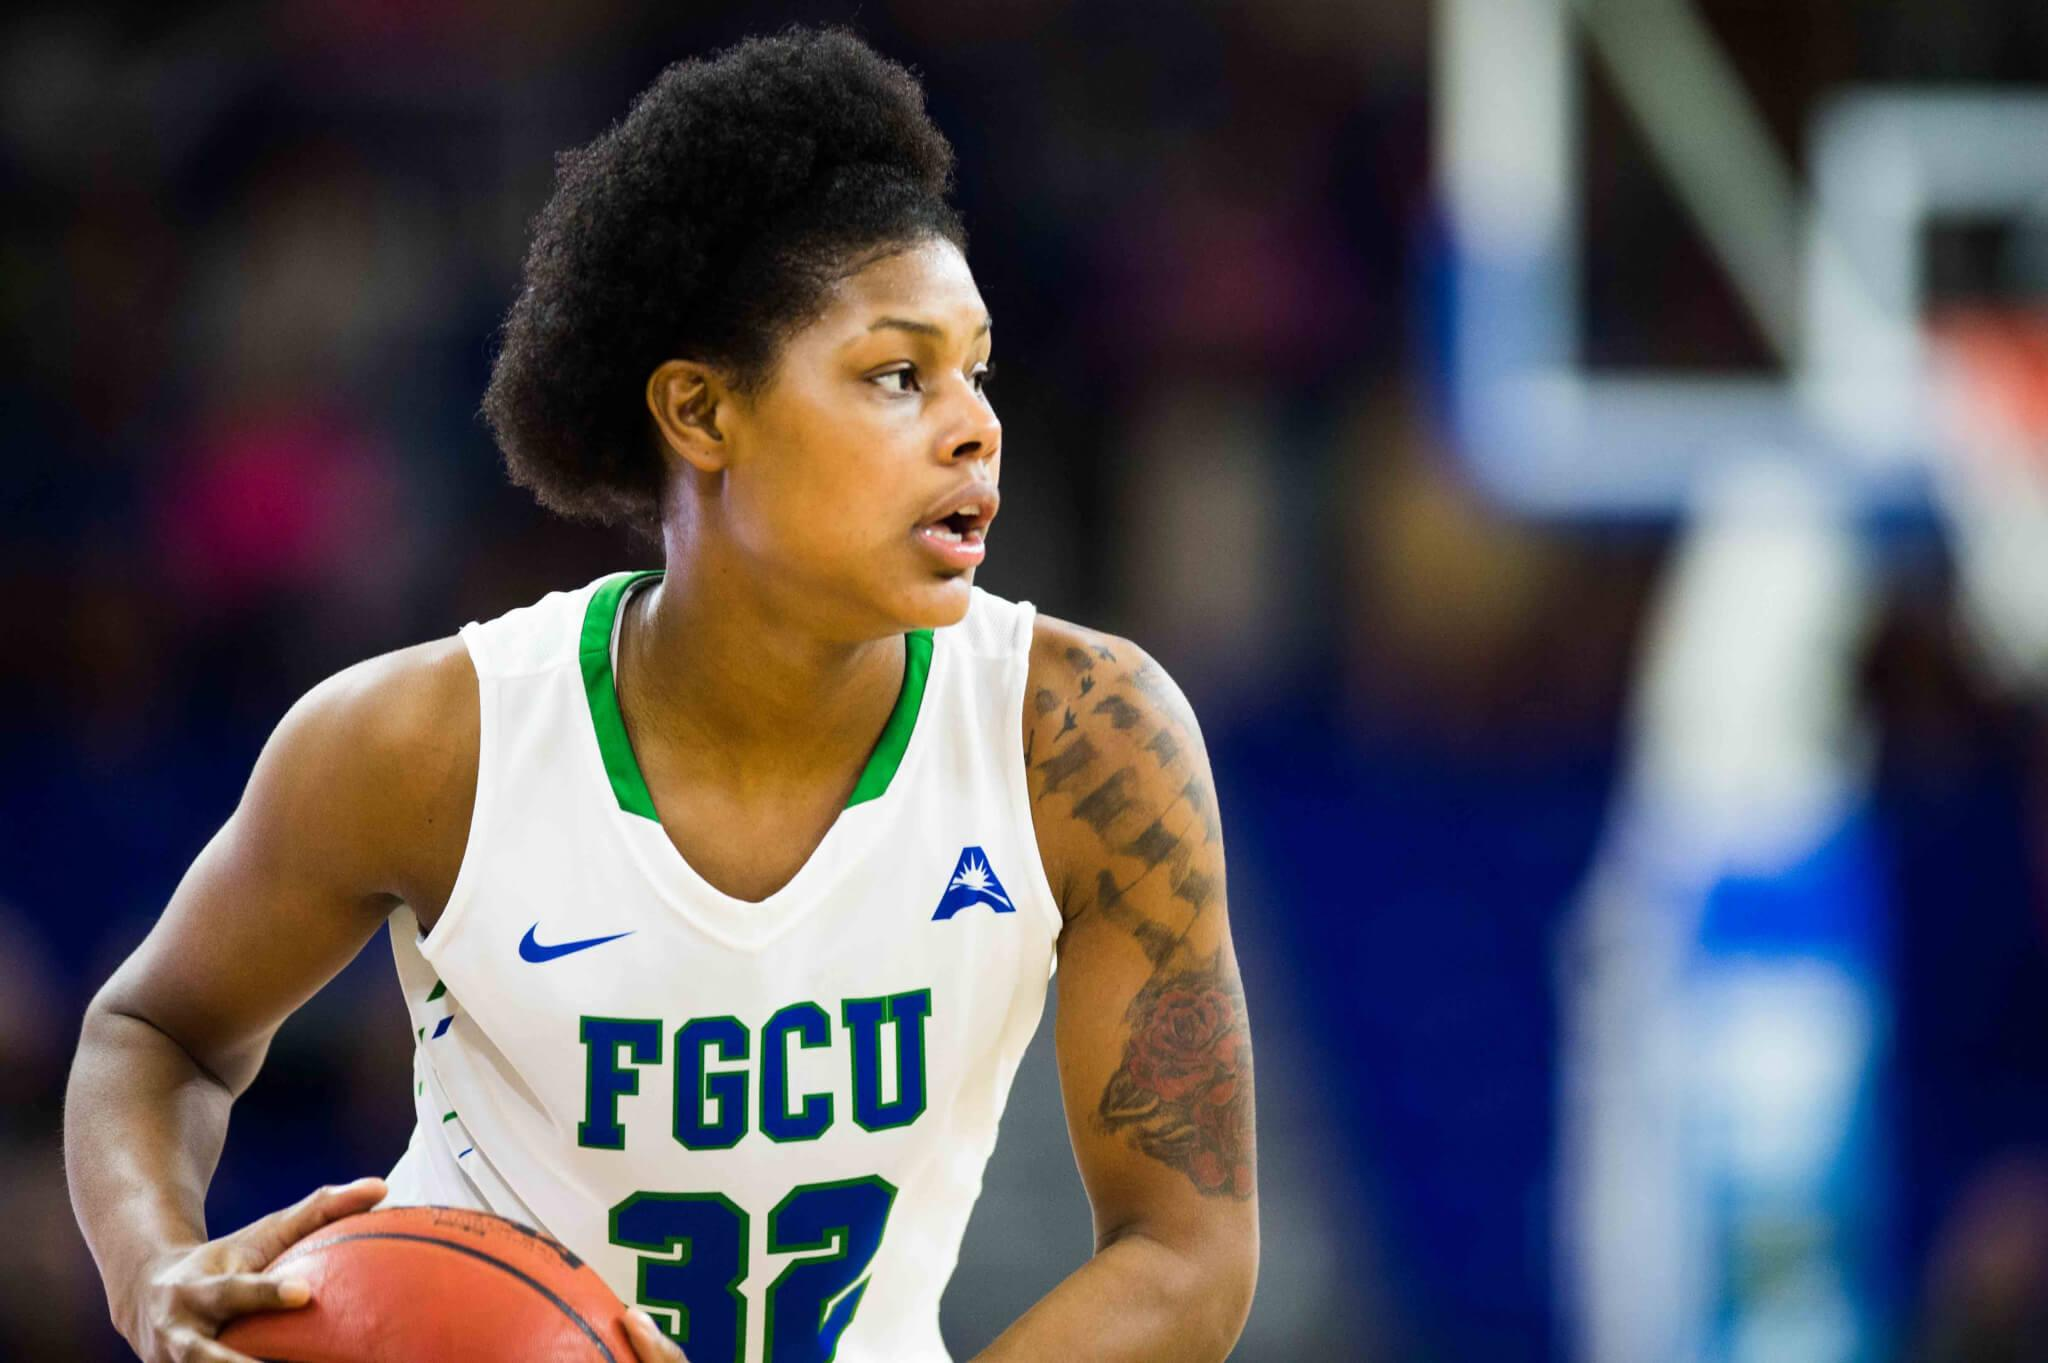 FGCU women's basketball defeats Kennesaw State to move to 14-0 at home